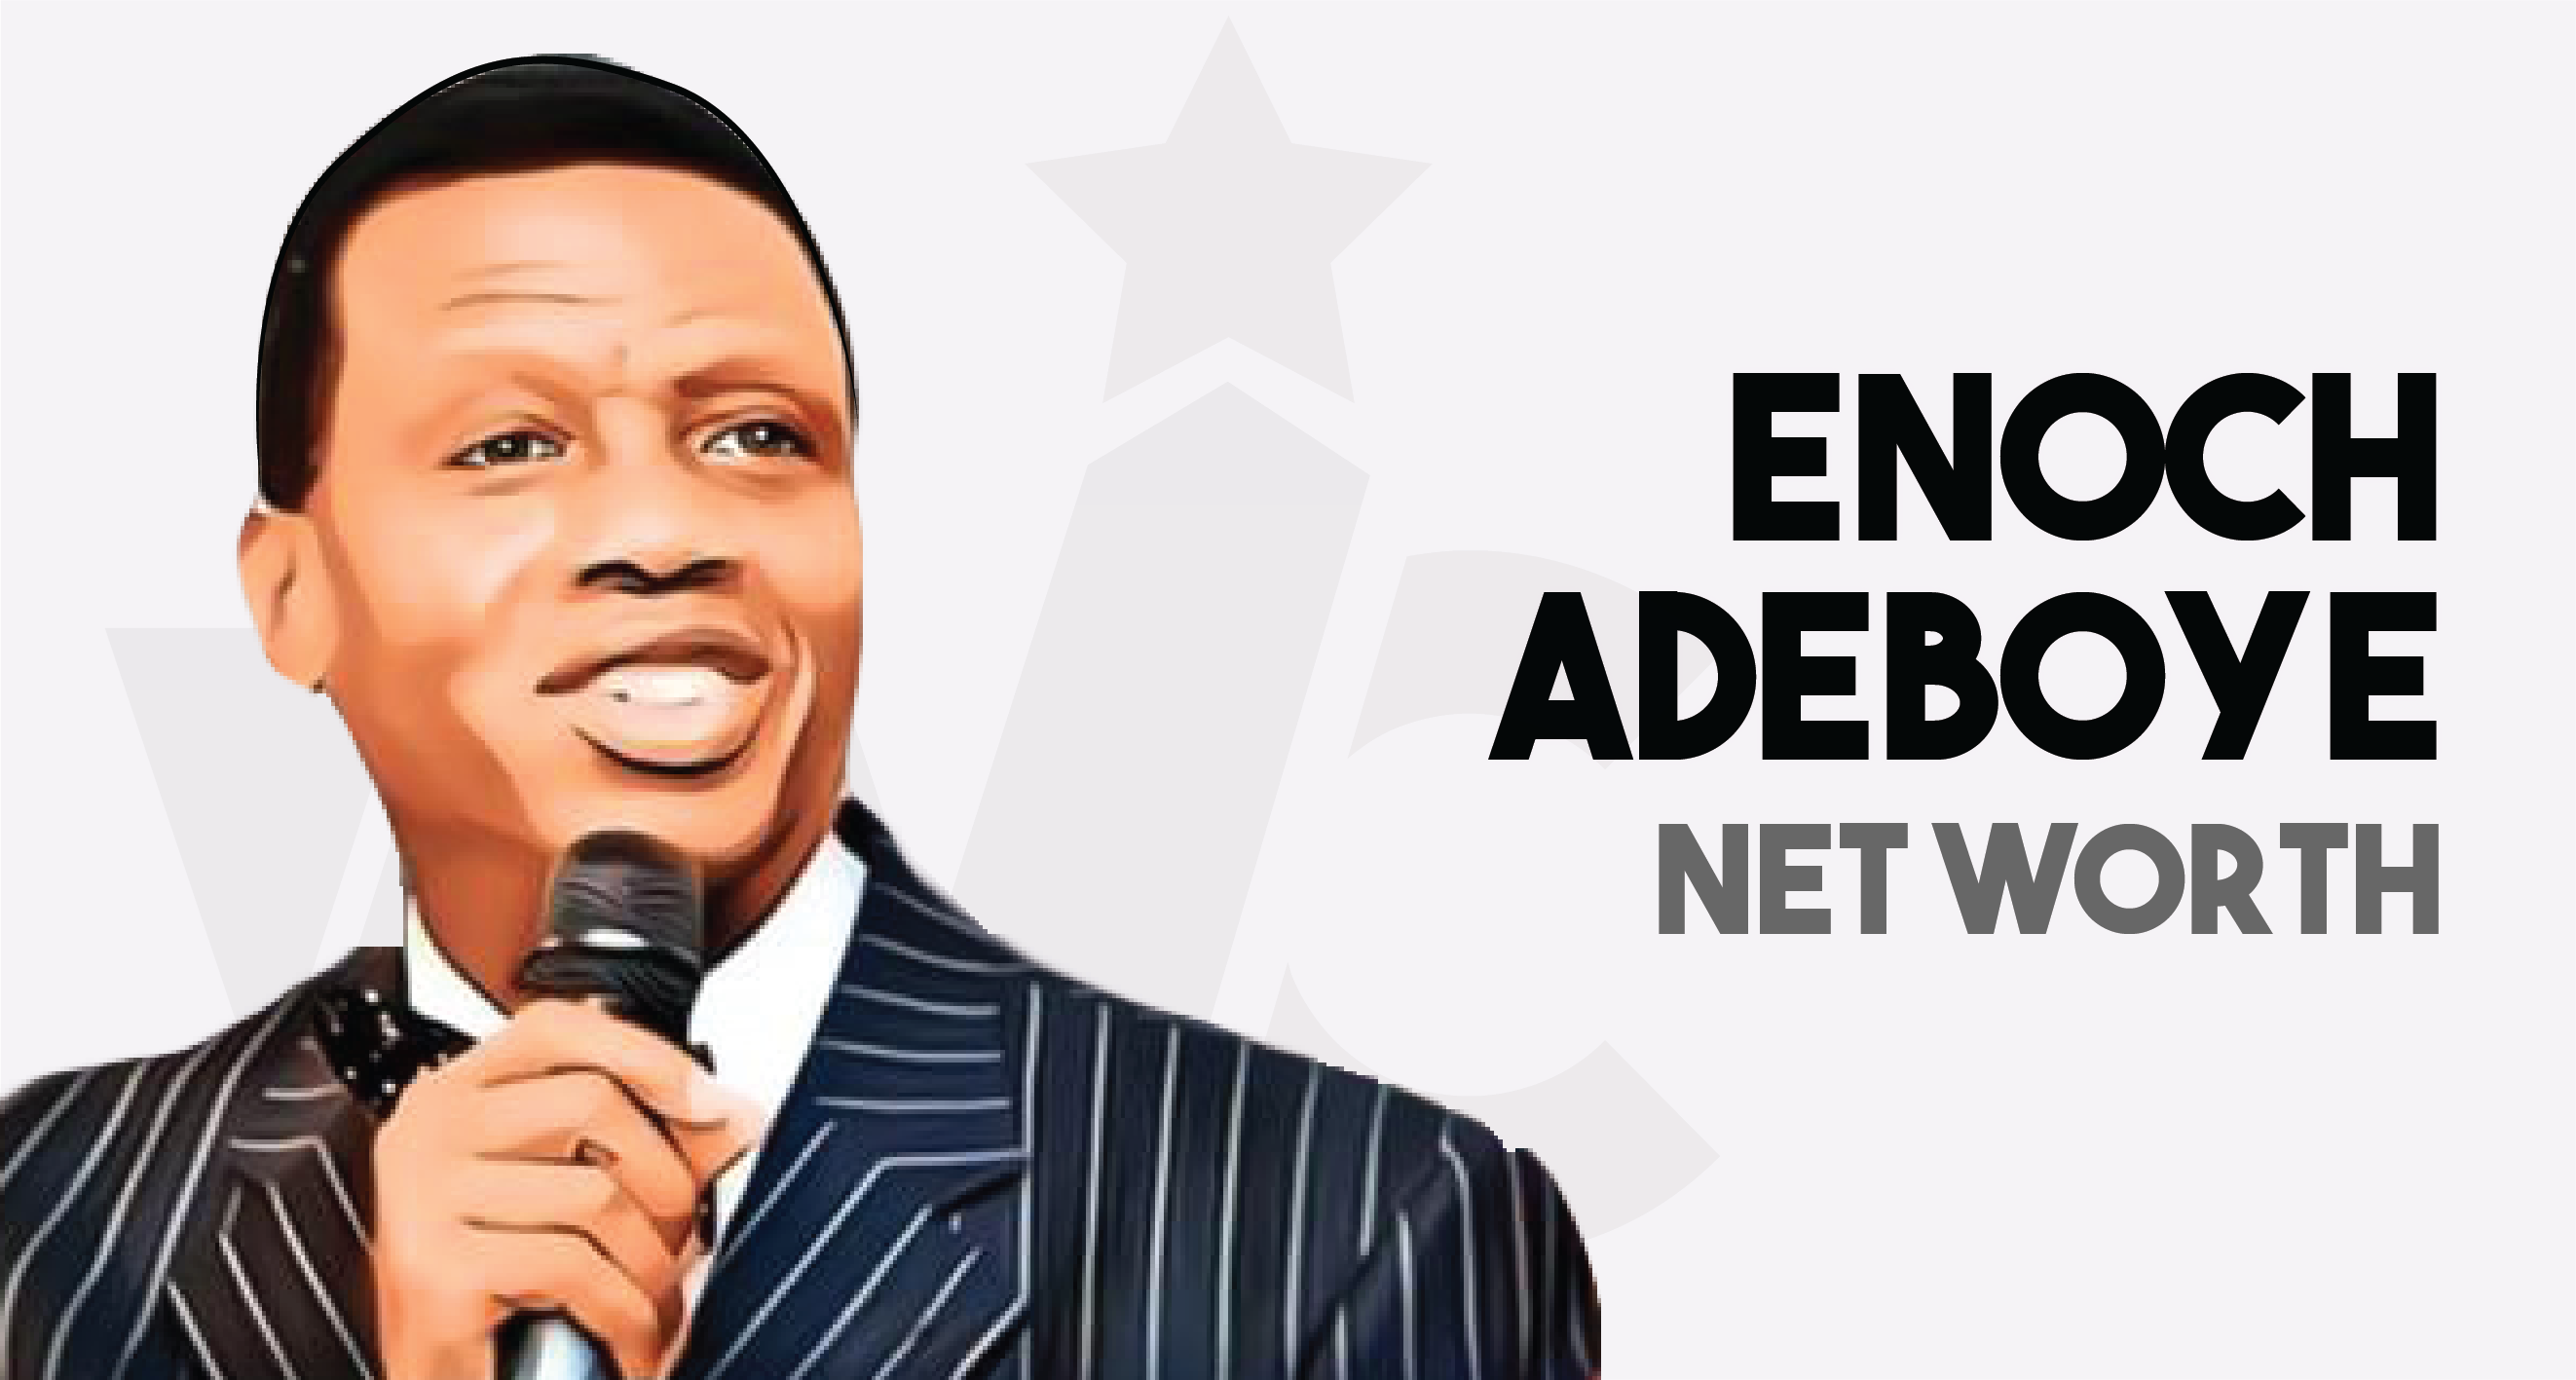 Pastor Enoch Adeboye - Net worth